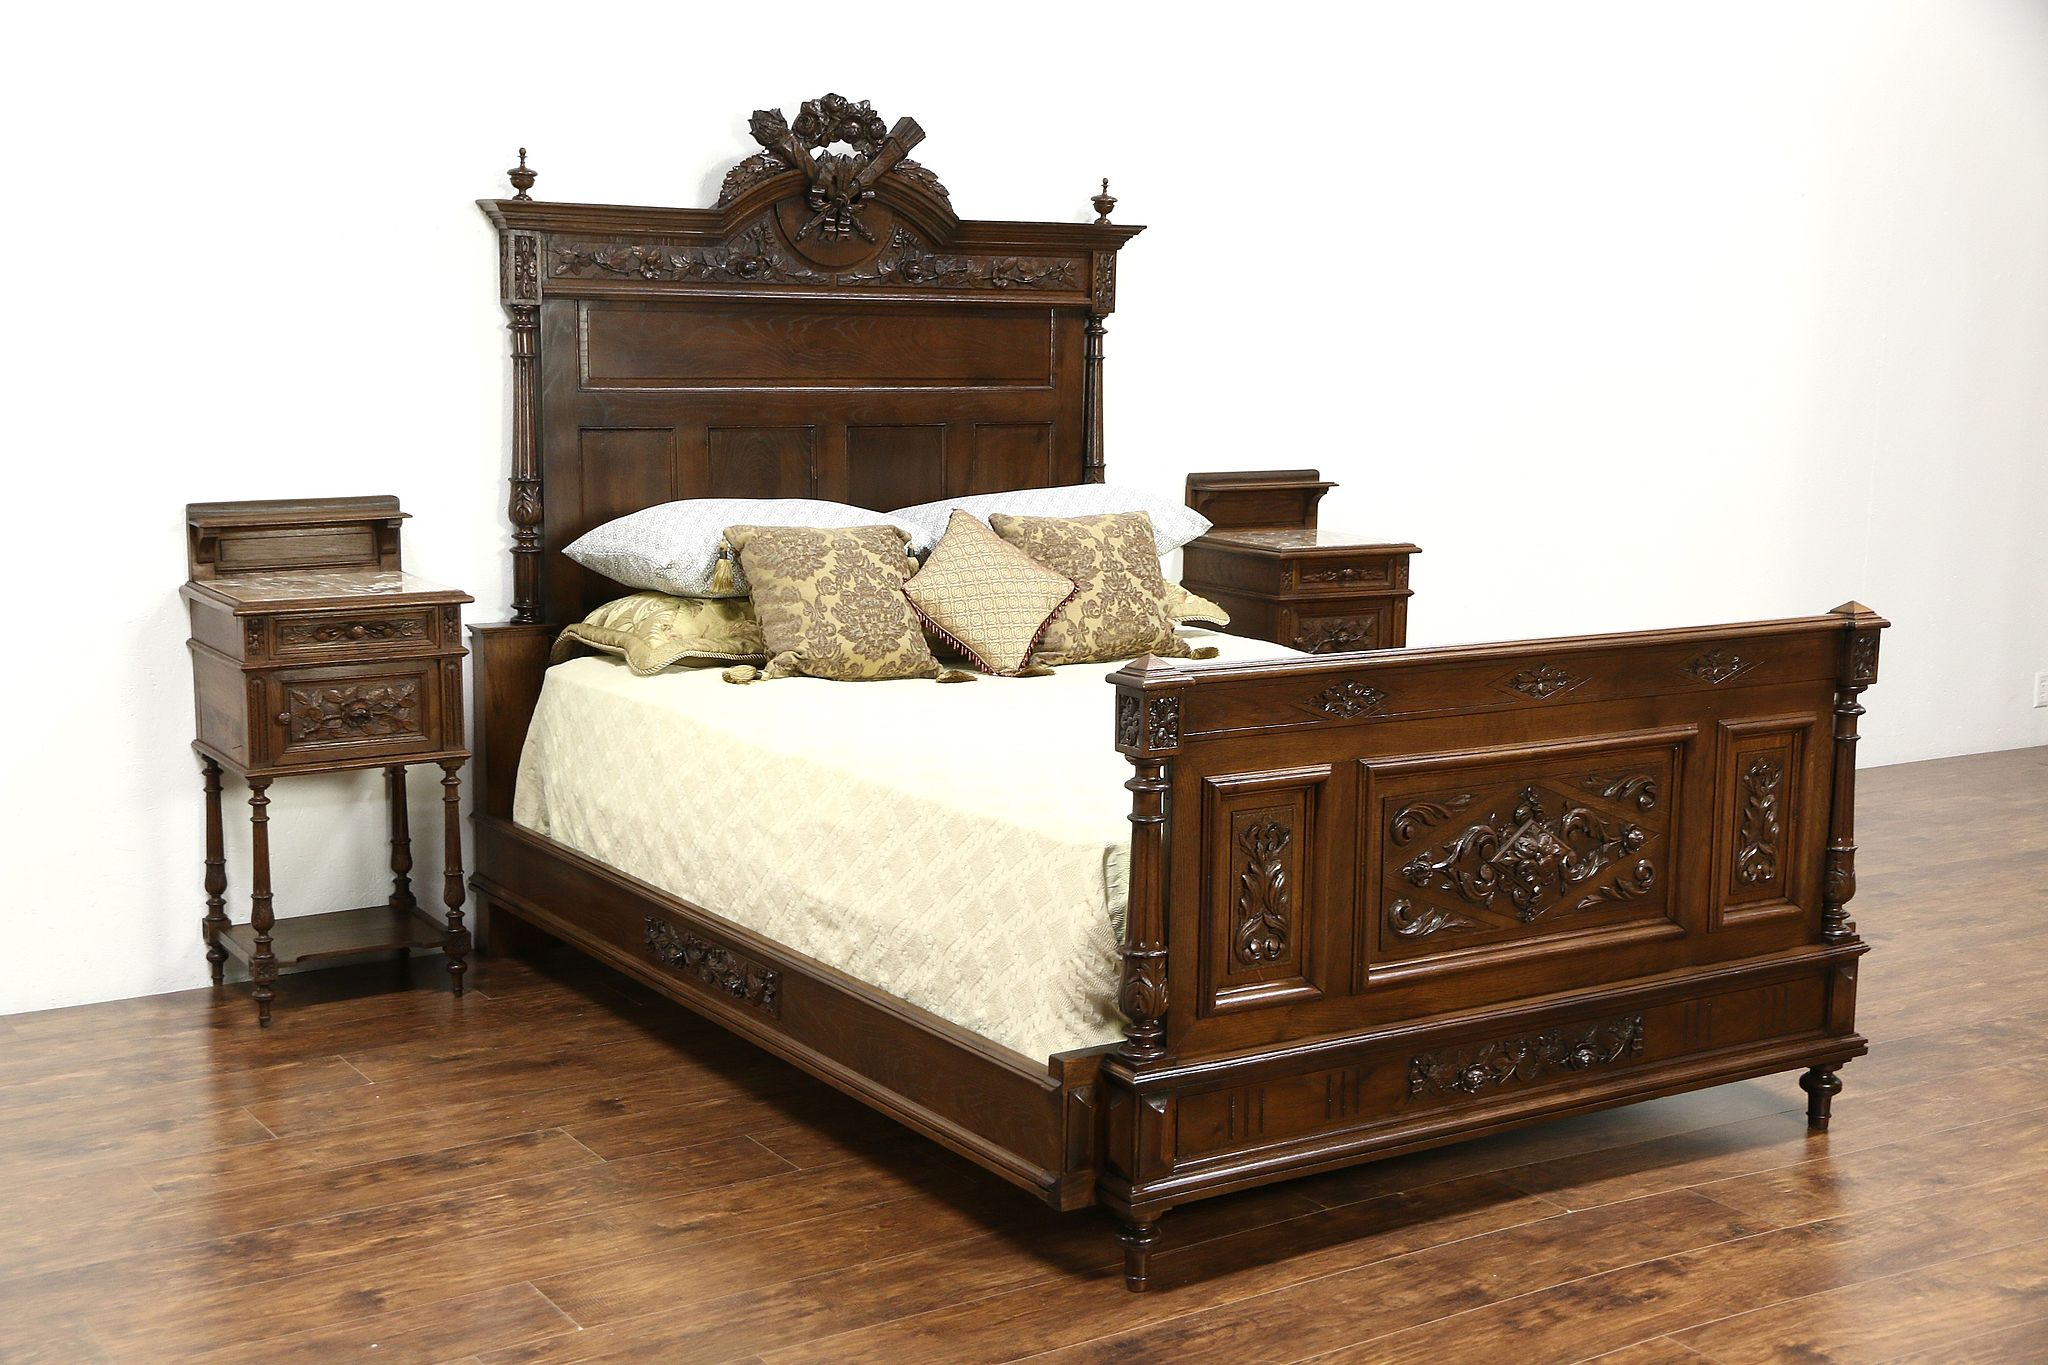 French Louis XVI Antique 1890 Carved Bedroom Set, Queen Size Bed, 2  Nightstands